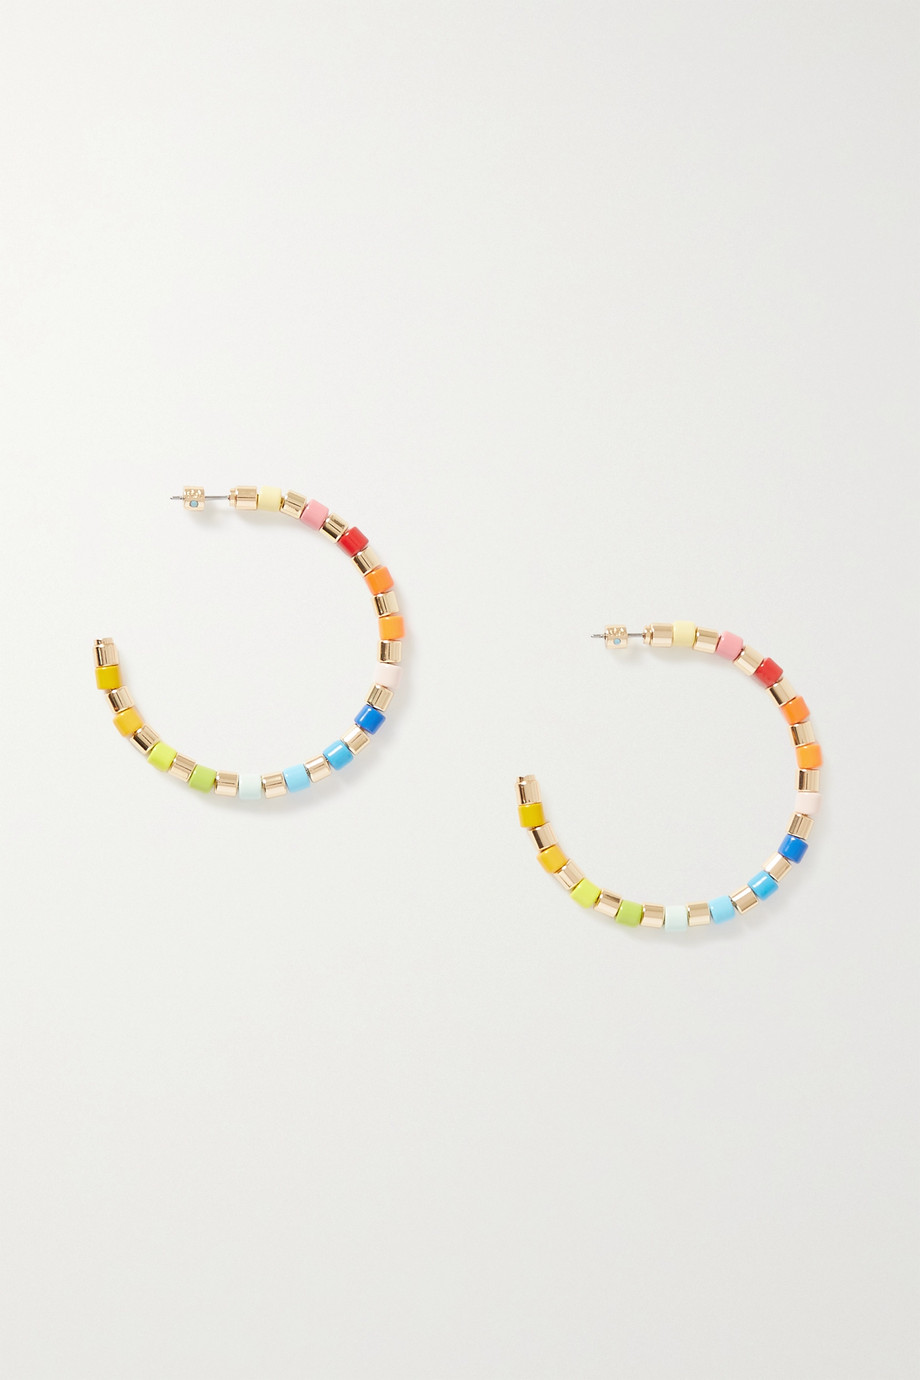 Roxanne Assoulin U-Tube gold-tone and enamel hoop earrings